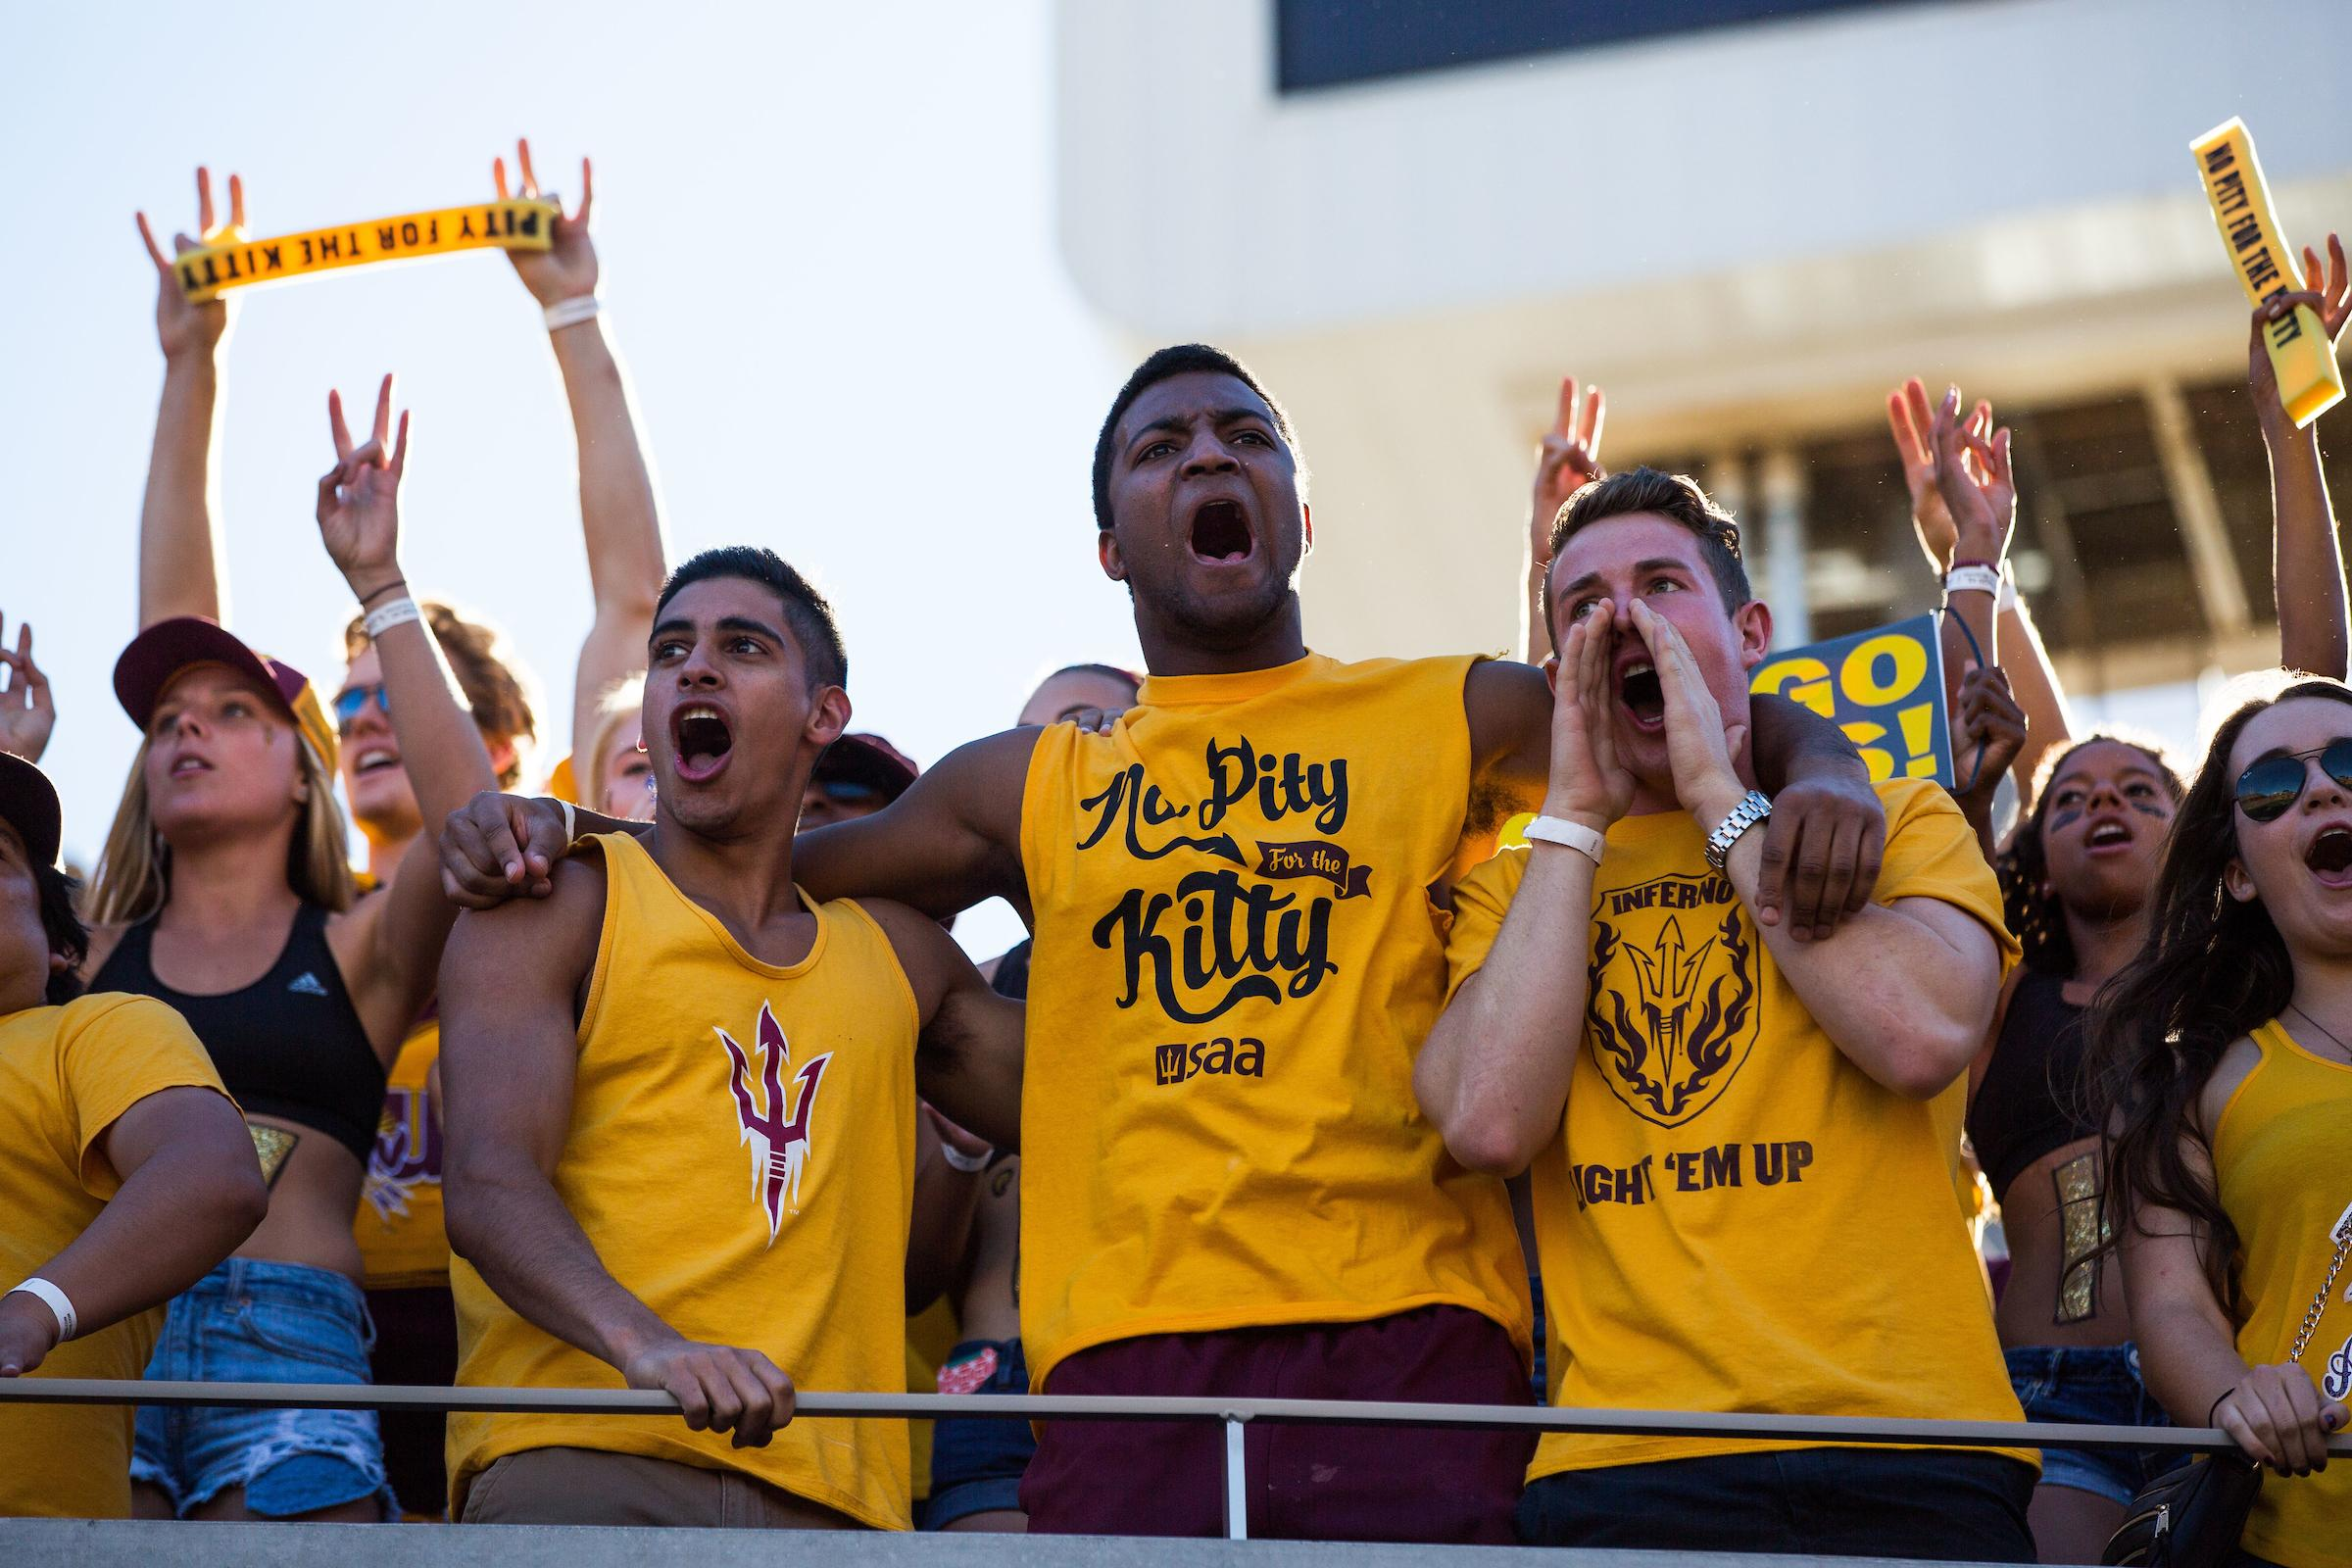 Students in yellow No Pity for the Kitty shirts at the 2015 Territorial Cup